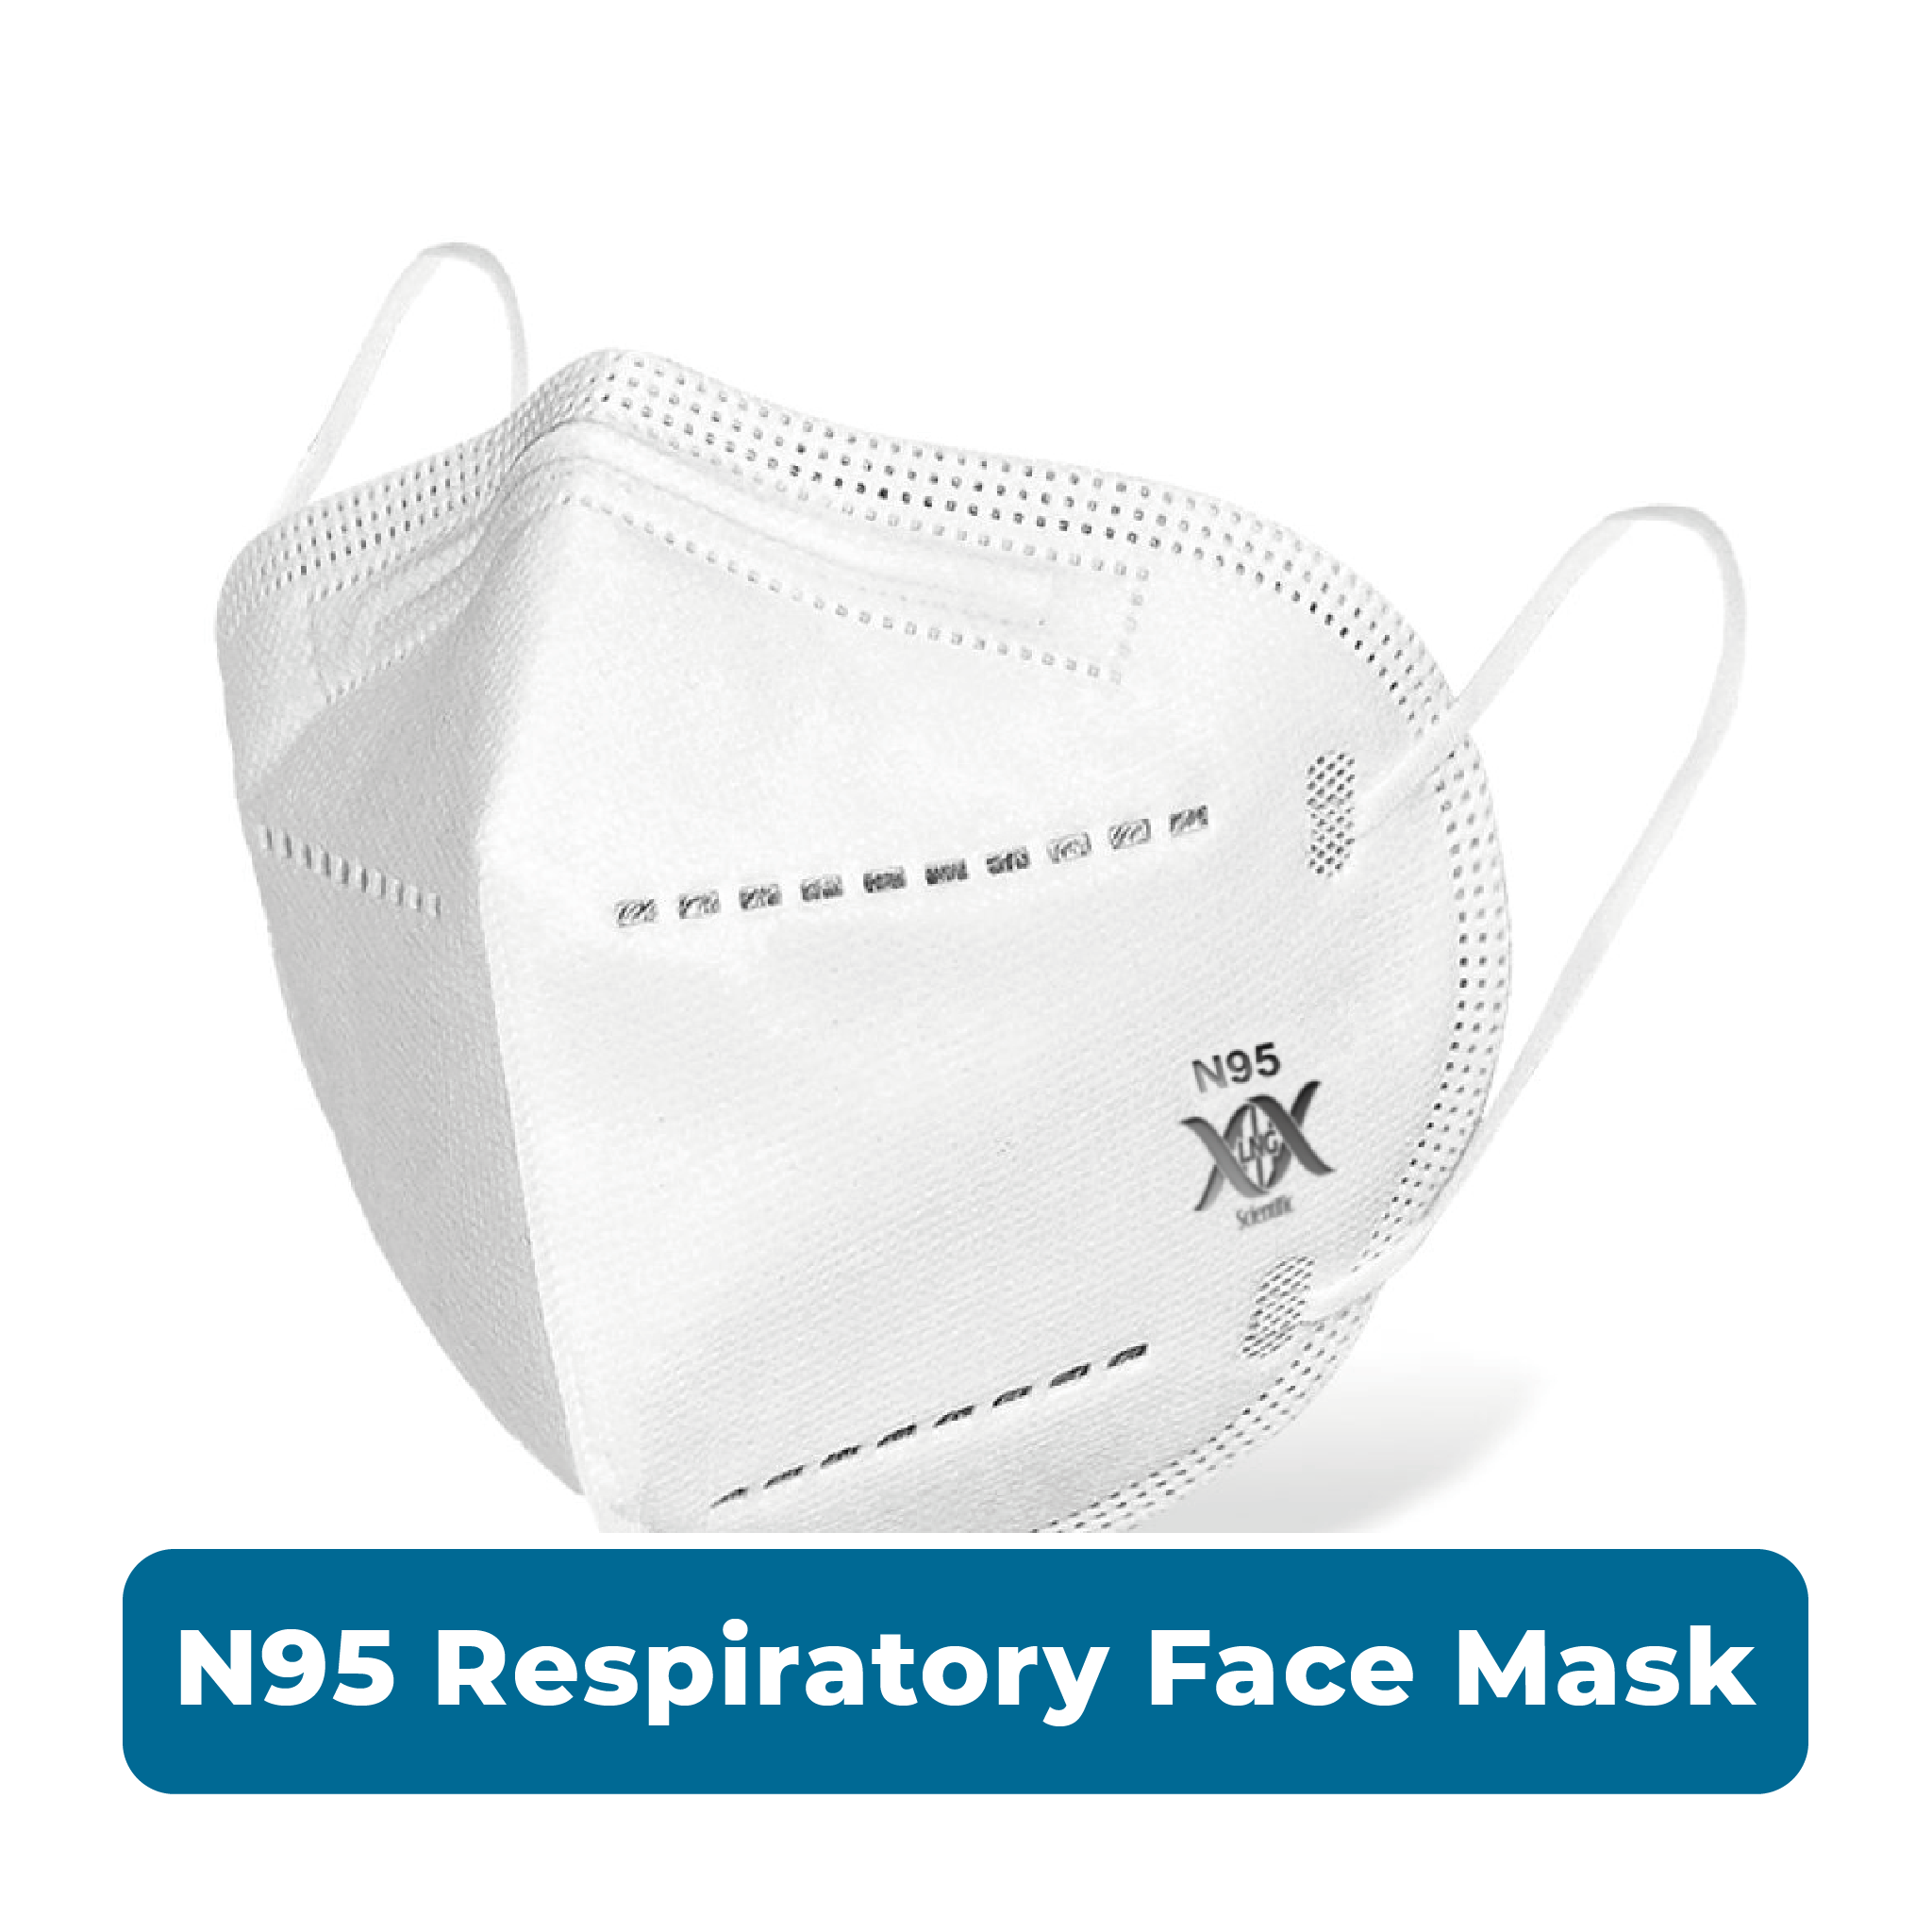 'N95 Masks Are The Gold Standard For Both Medical Professionals and The General Public.'